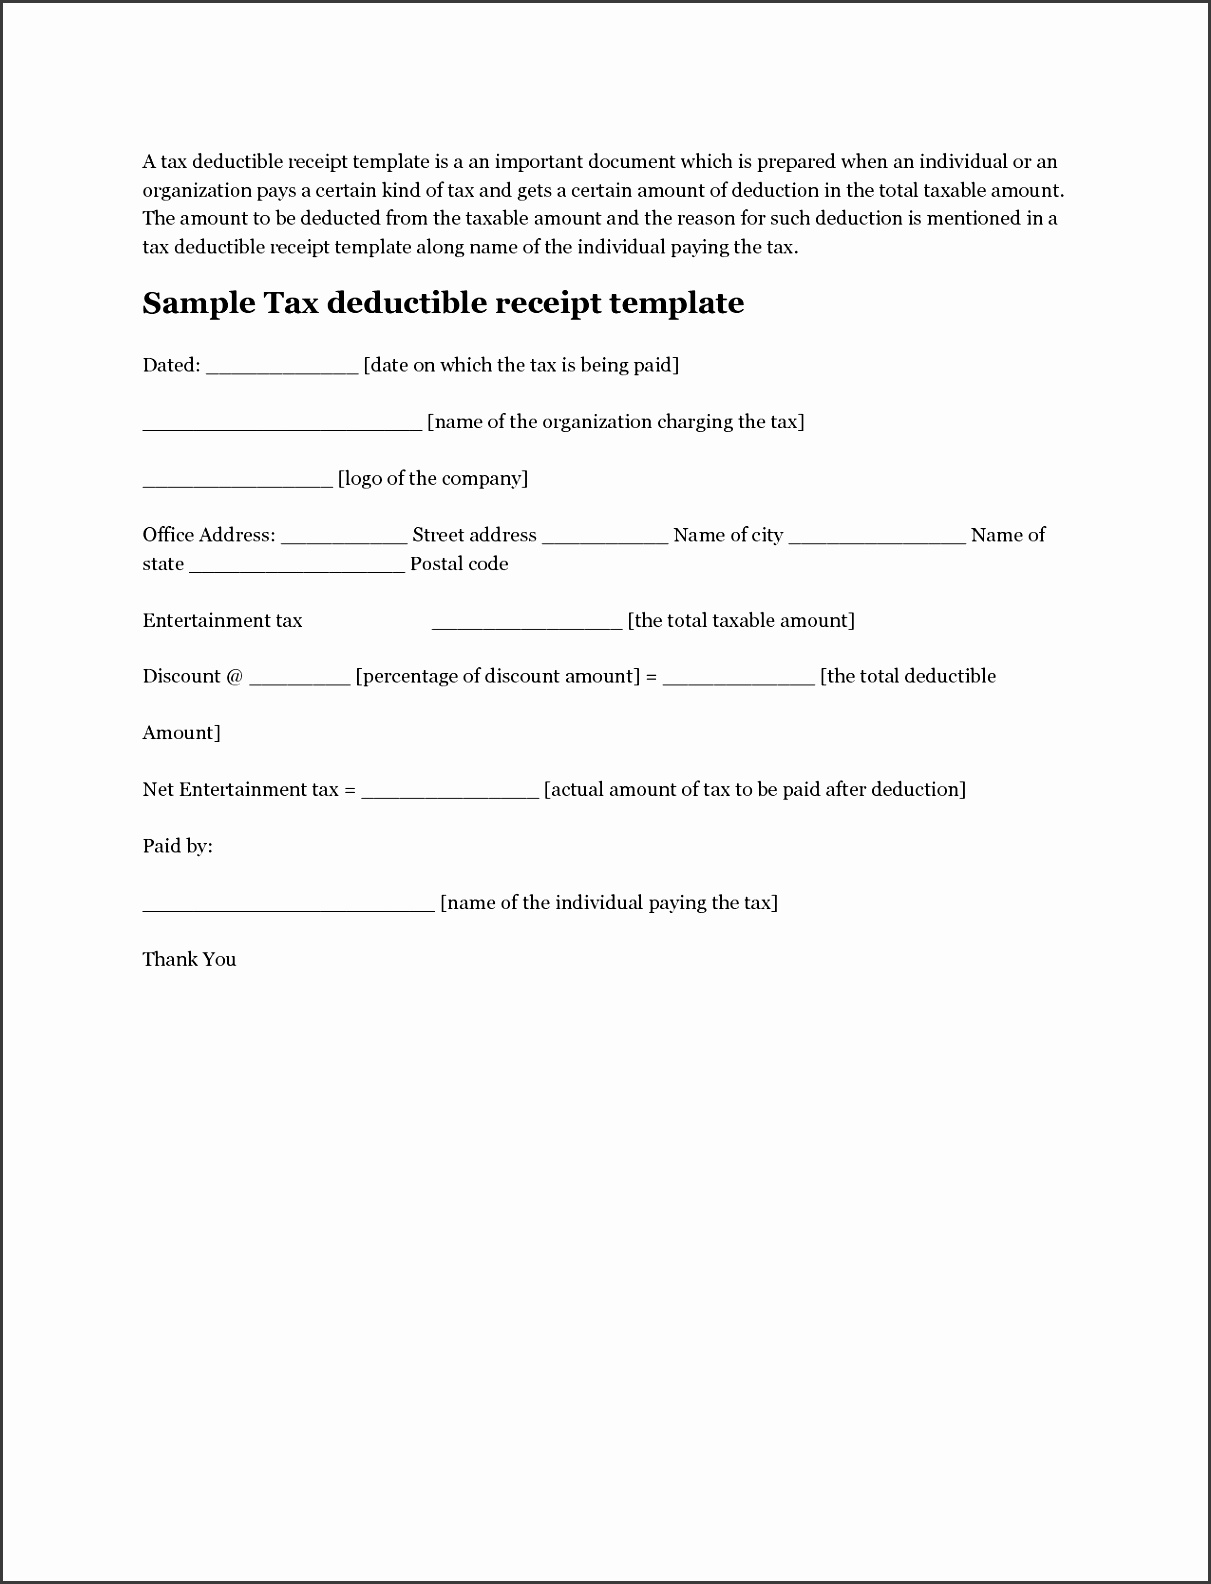 Tax Letter Template For Child Care on cleaning checklist, payment letter, provider contract, training certificate, free downloadable, tear off flyer, sign sheet, general information for, action plan, wordpress free, flu alert, center checklist,